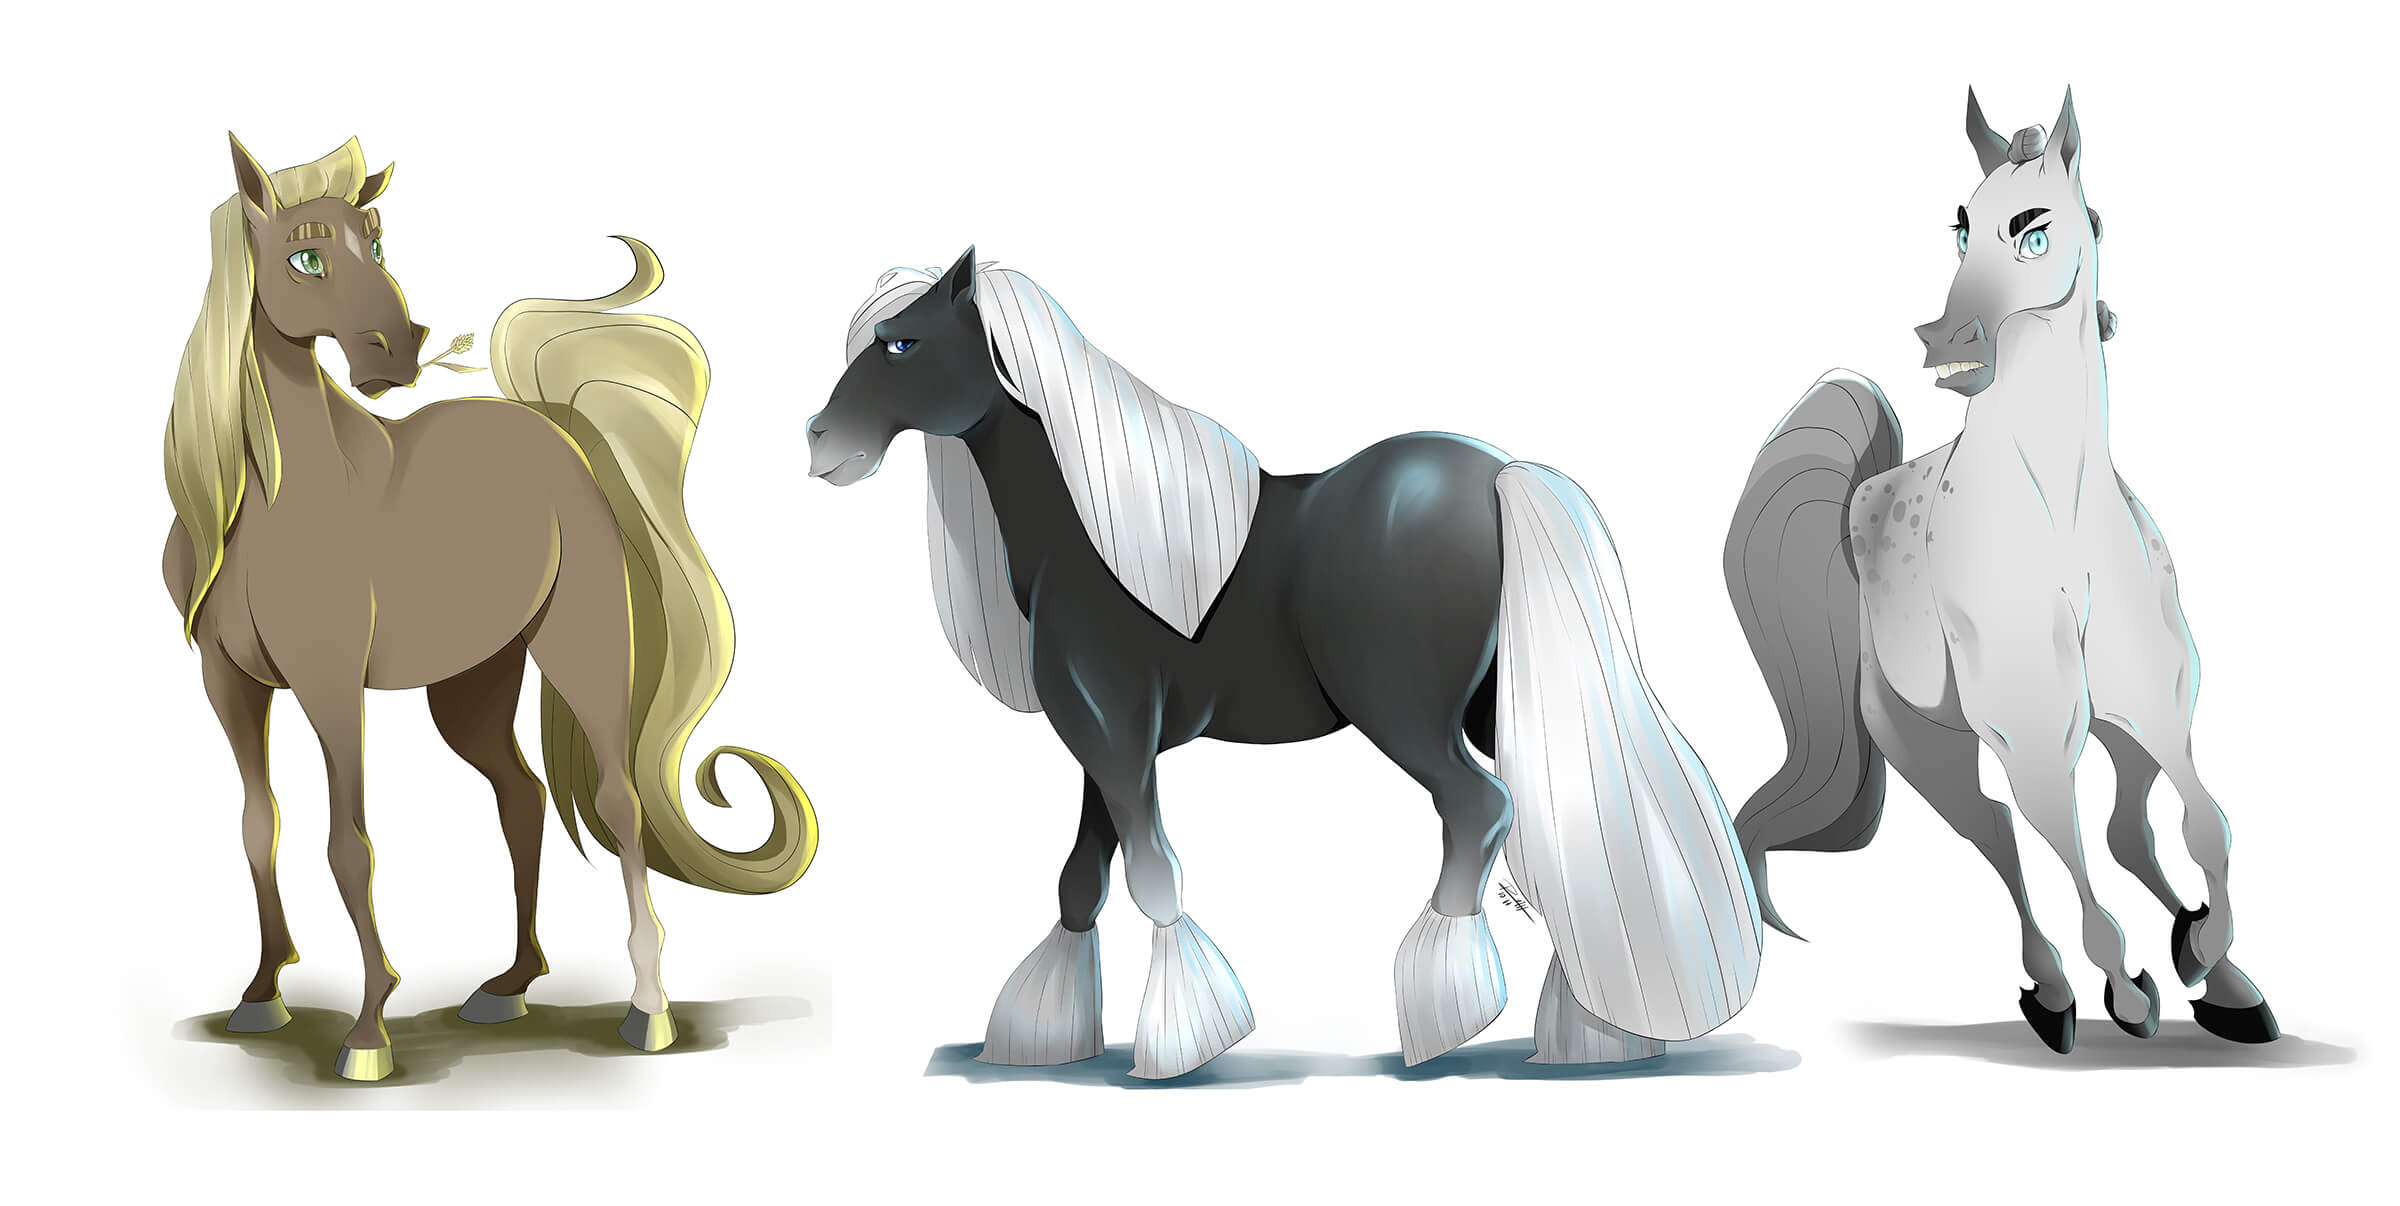 Digital painting of a brown, black, and white horse in cartoon stylization seen from various angles.